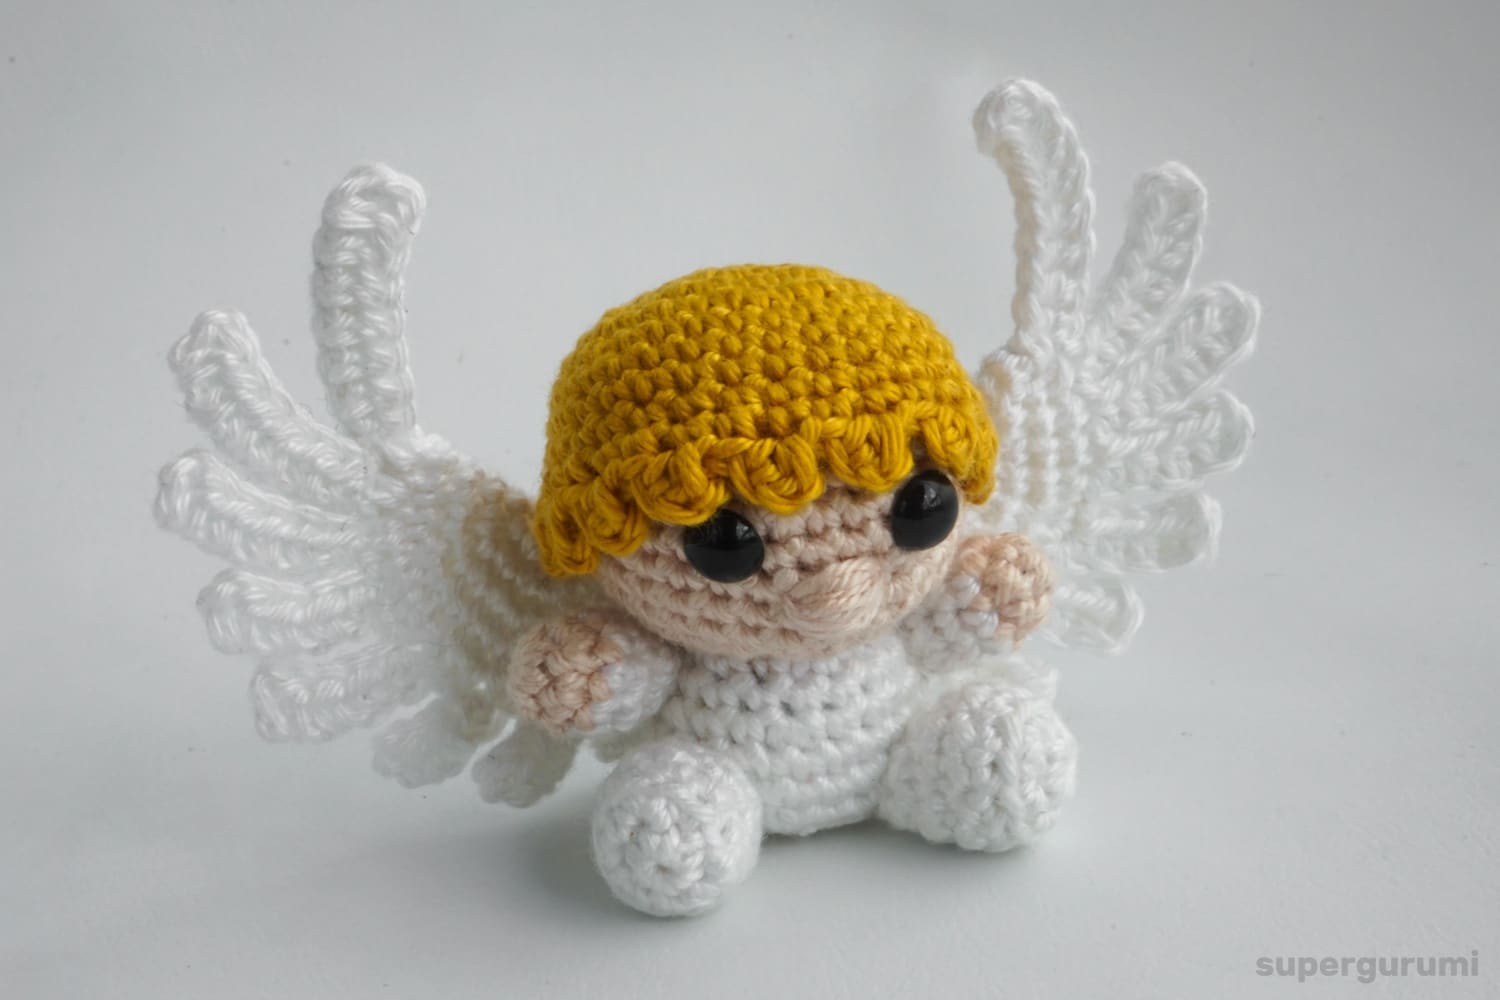 Amigurumi Crochet Angel Pattern | Supergurumi | 1000x1500